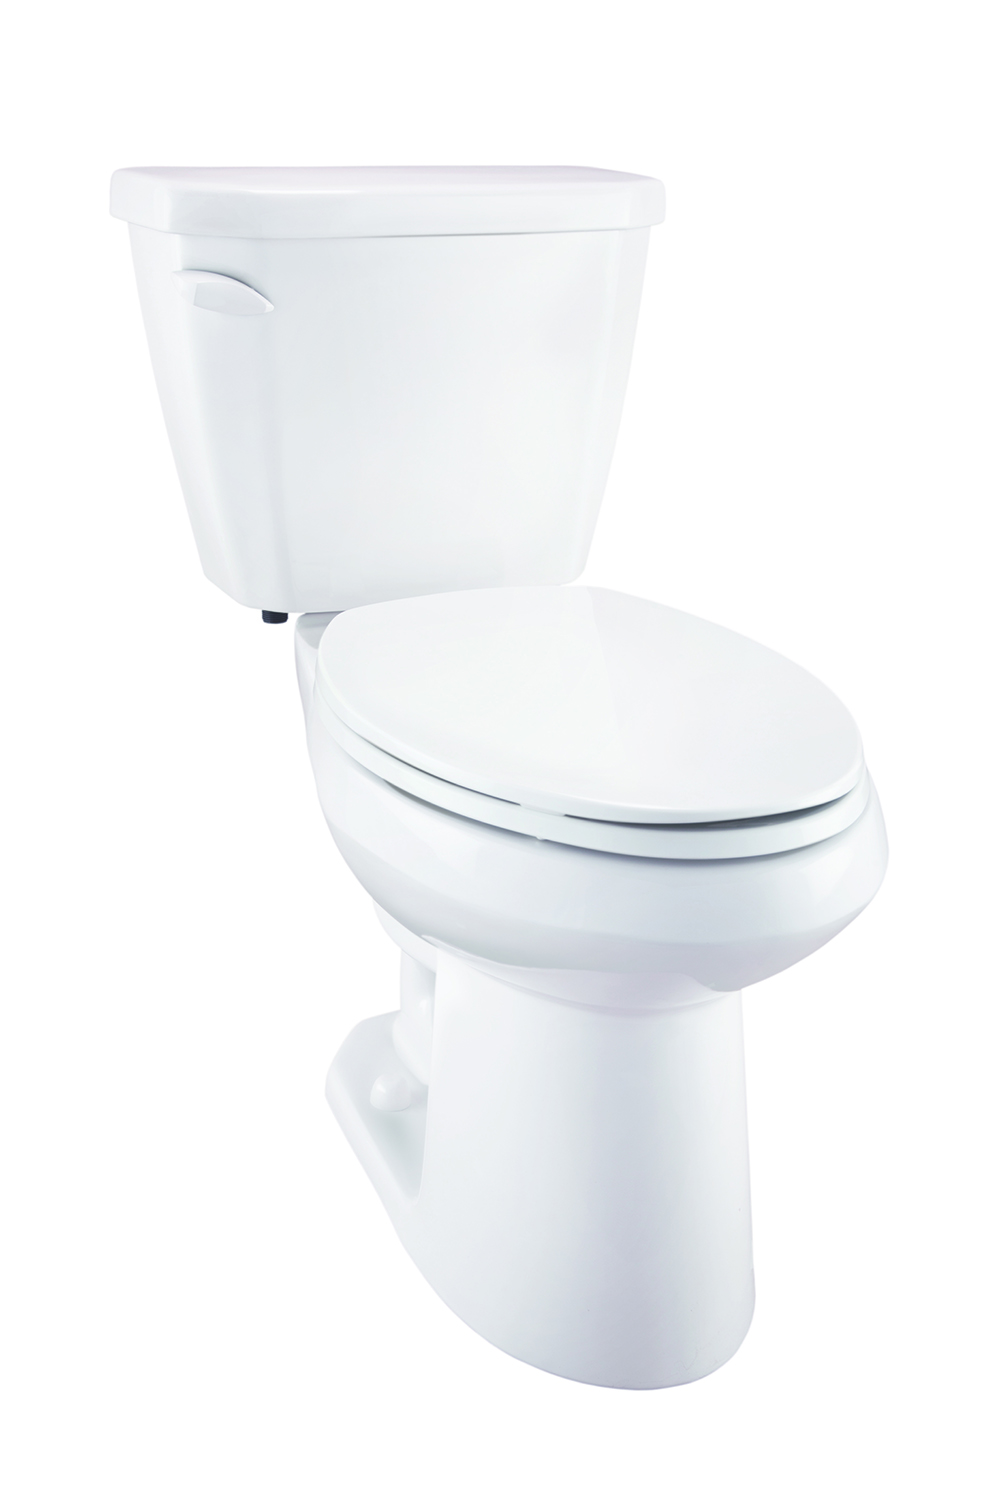 10 inch rough in toilet - Viper 1 28 Gpf 10 Rough In Two Piece Elongated Ergoheight Toilet Gerber Plumbing